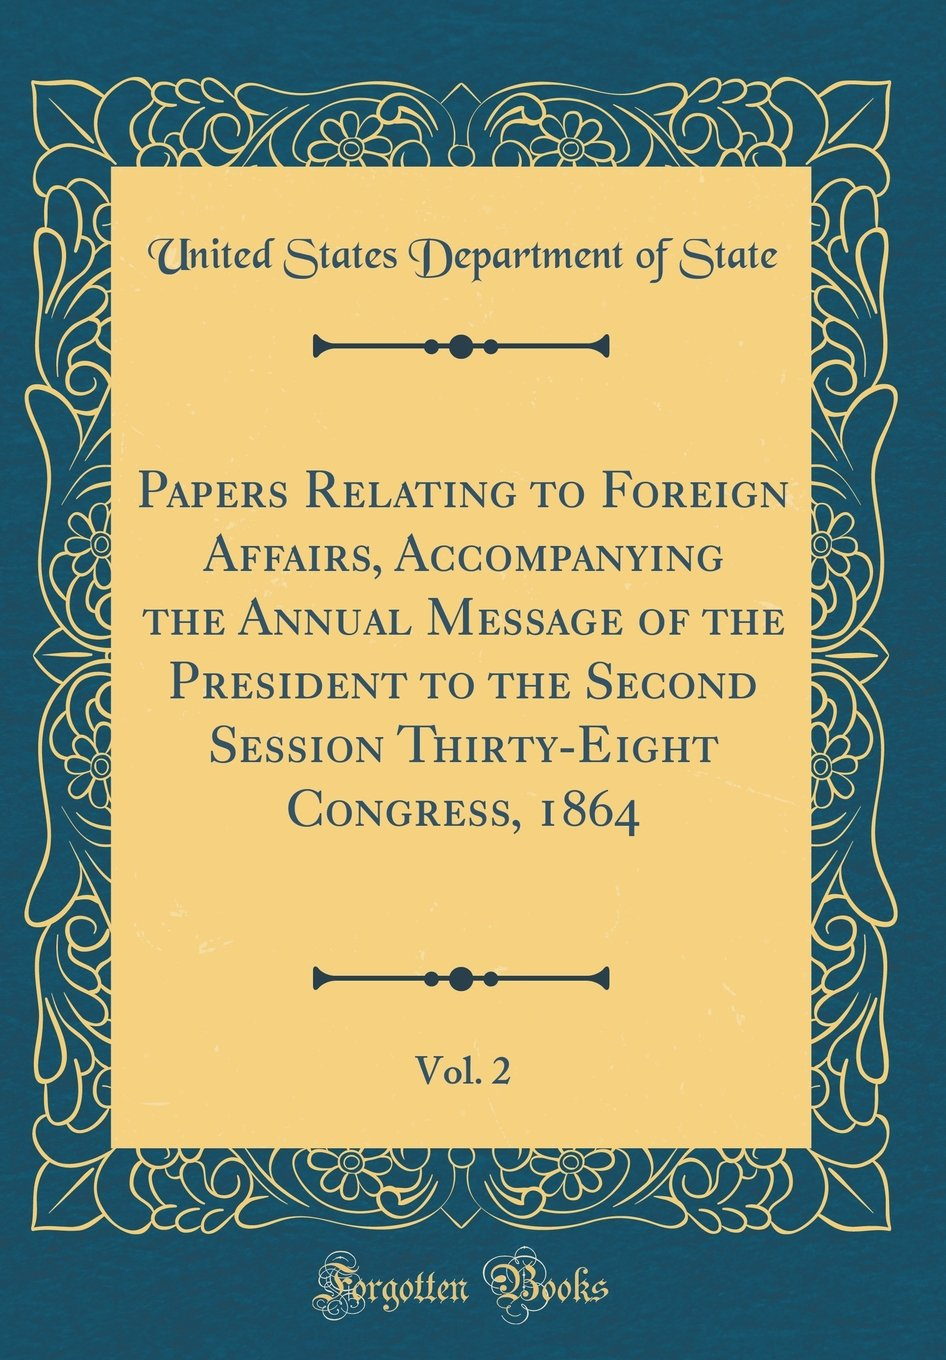 Download Papers Relating to Foreign Affairs, Accompanying the Annual Message of the President to the Second Session Thirty-Eight Congress, 1864, Vol. 2 (Classic Reprint) pdf